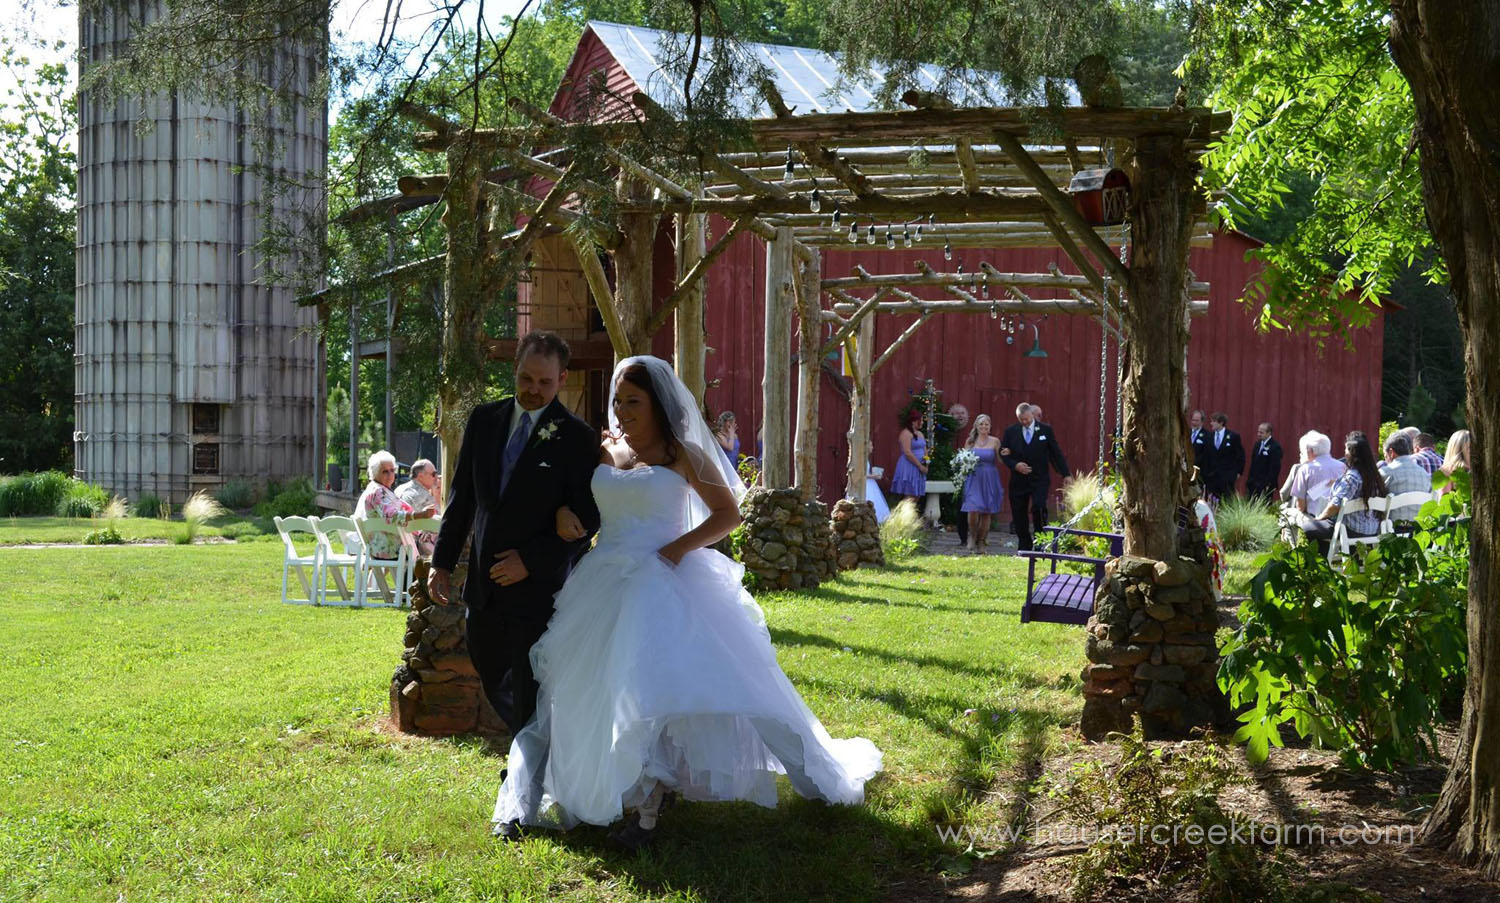 first-wedding-at-hauser-creek-farm-tina-and-justin.jpg